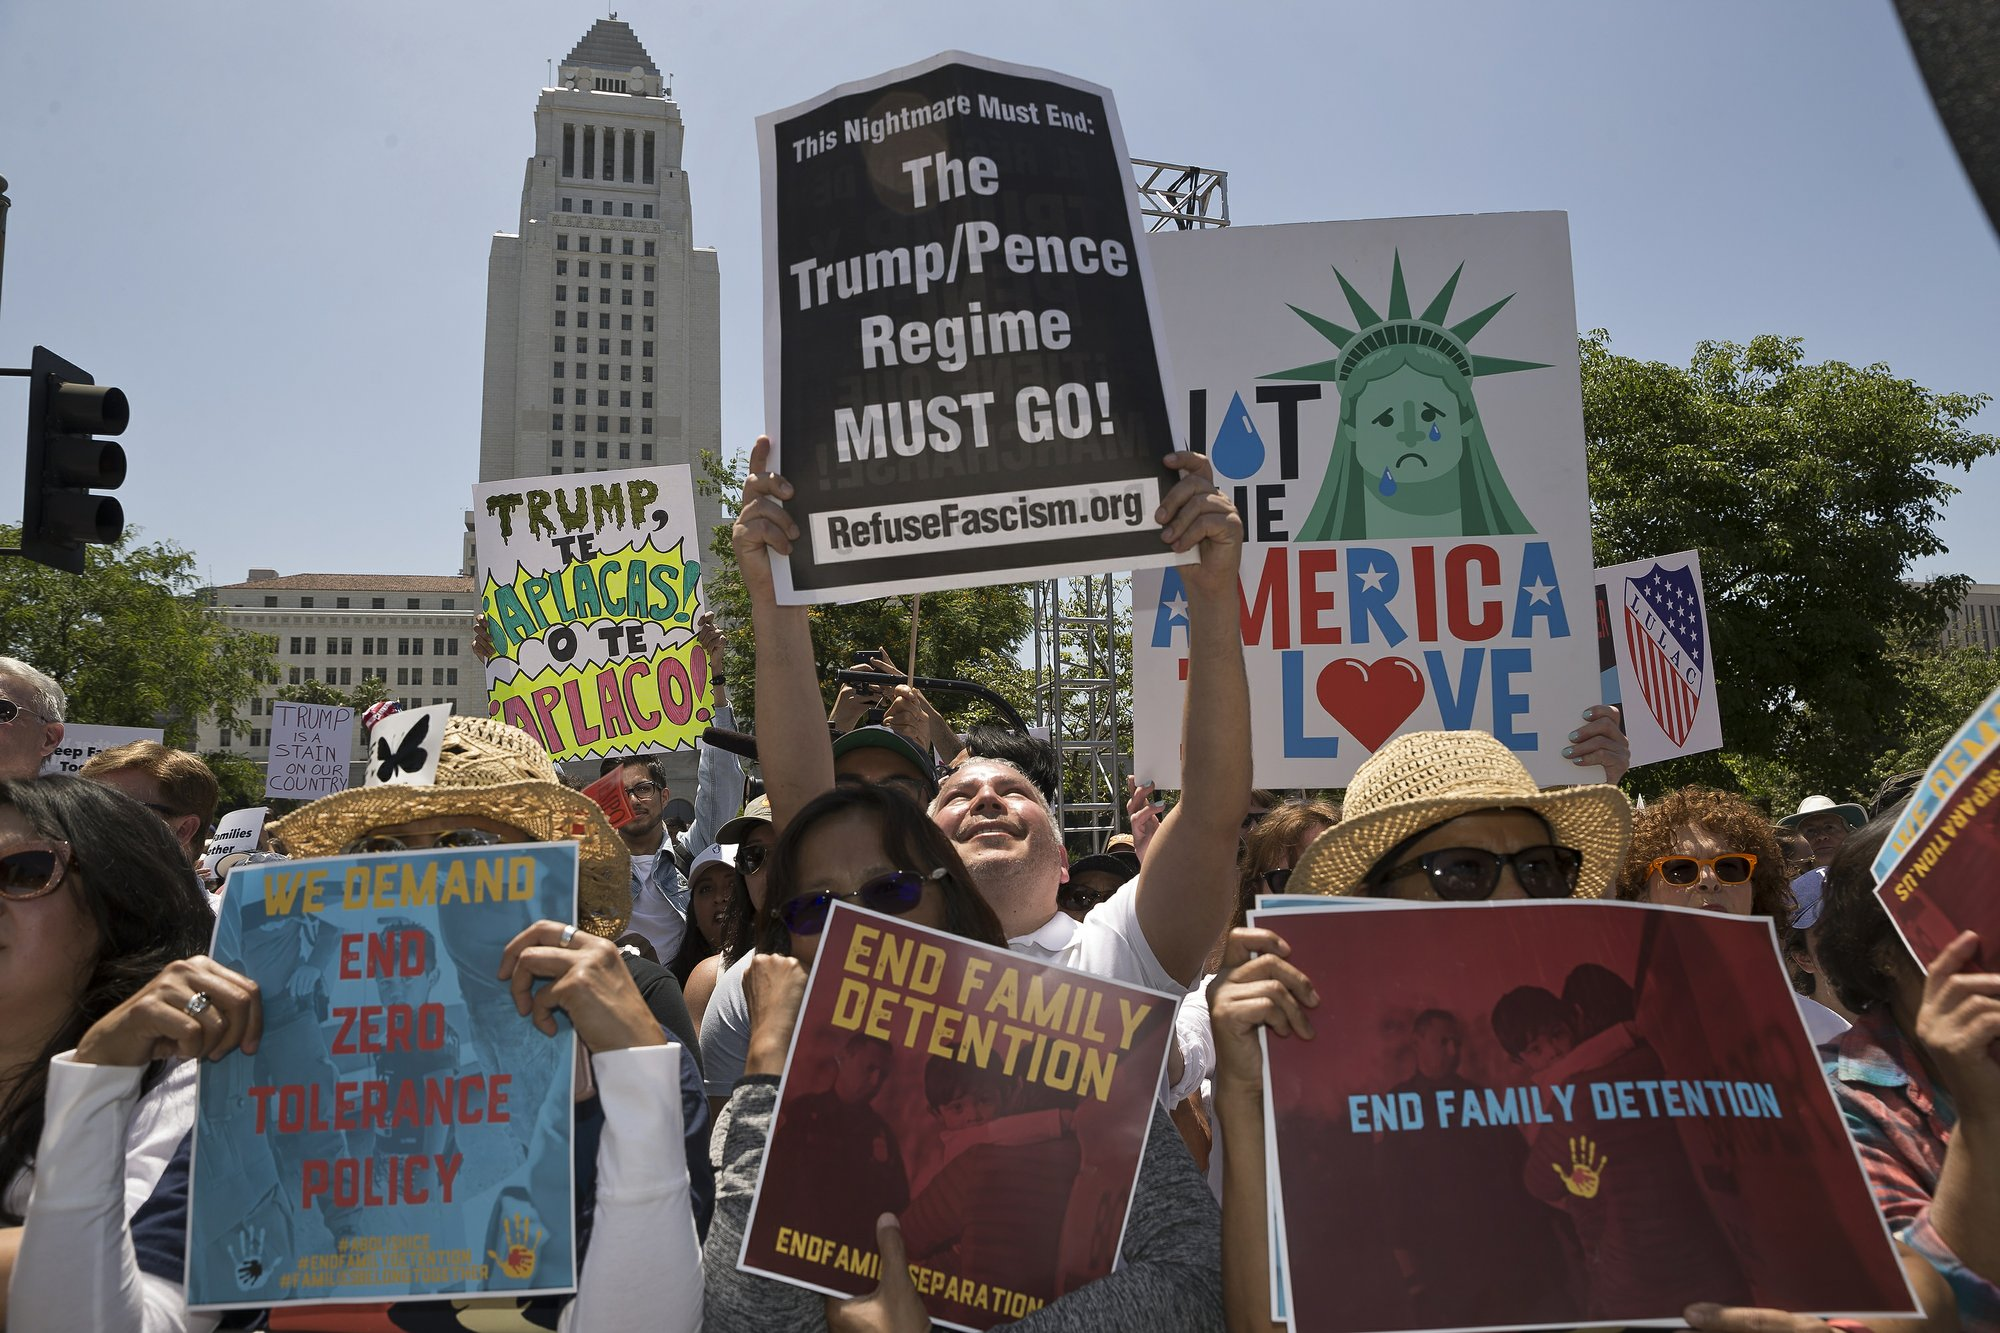 Protests planned nationwide over Trump immigration policy